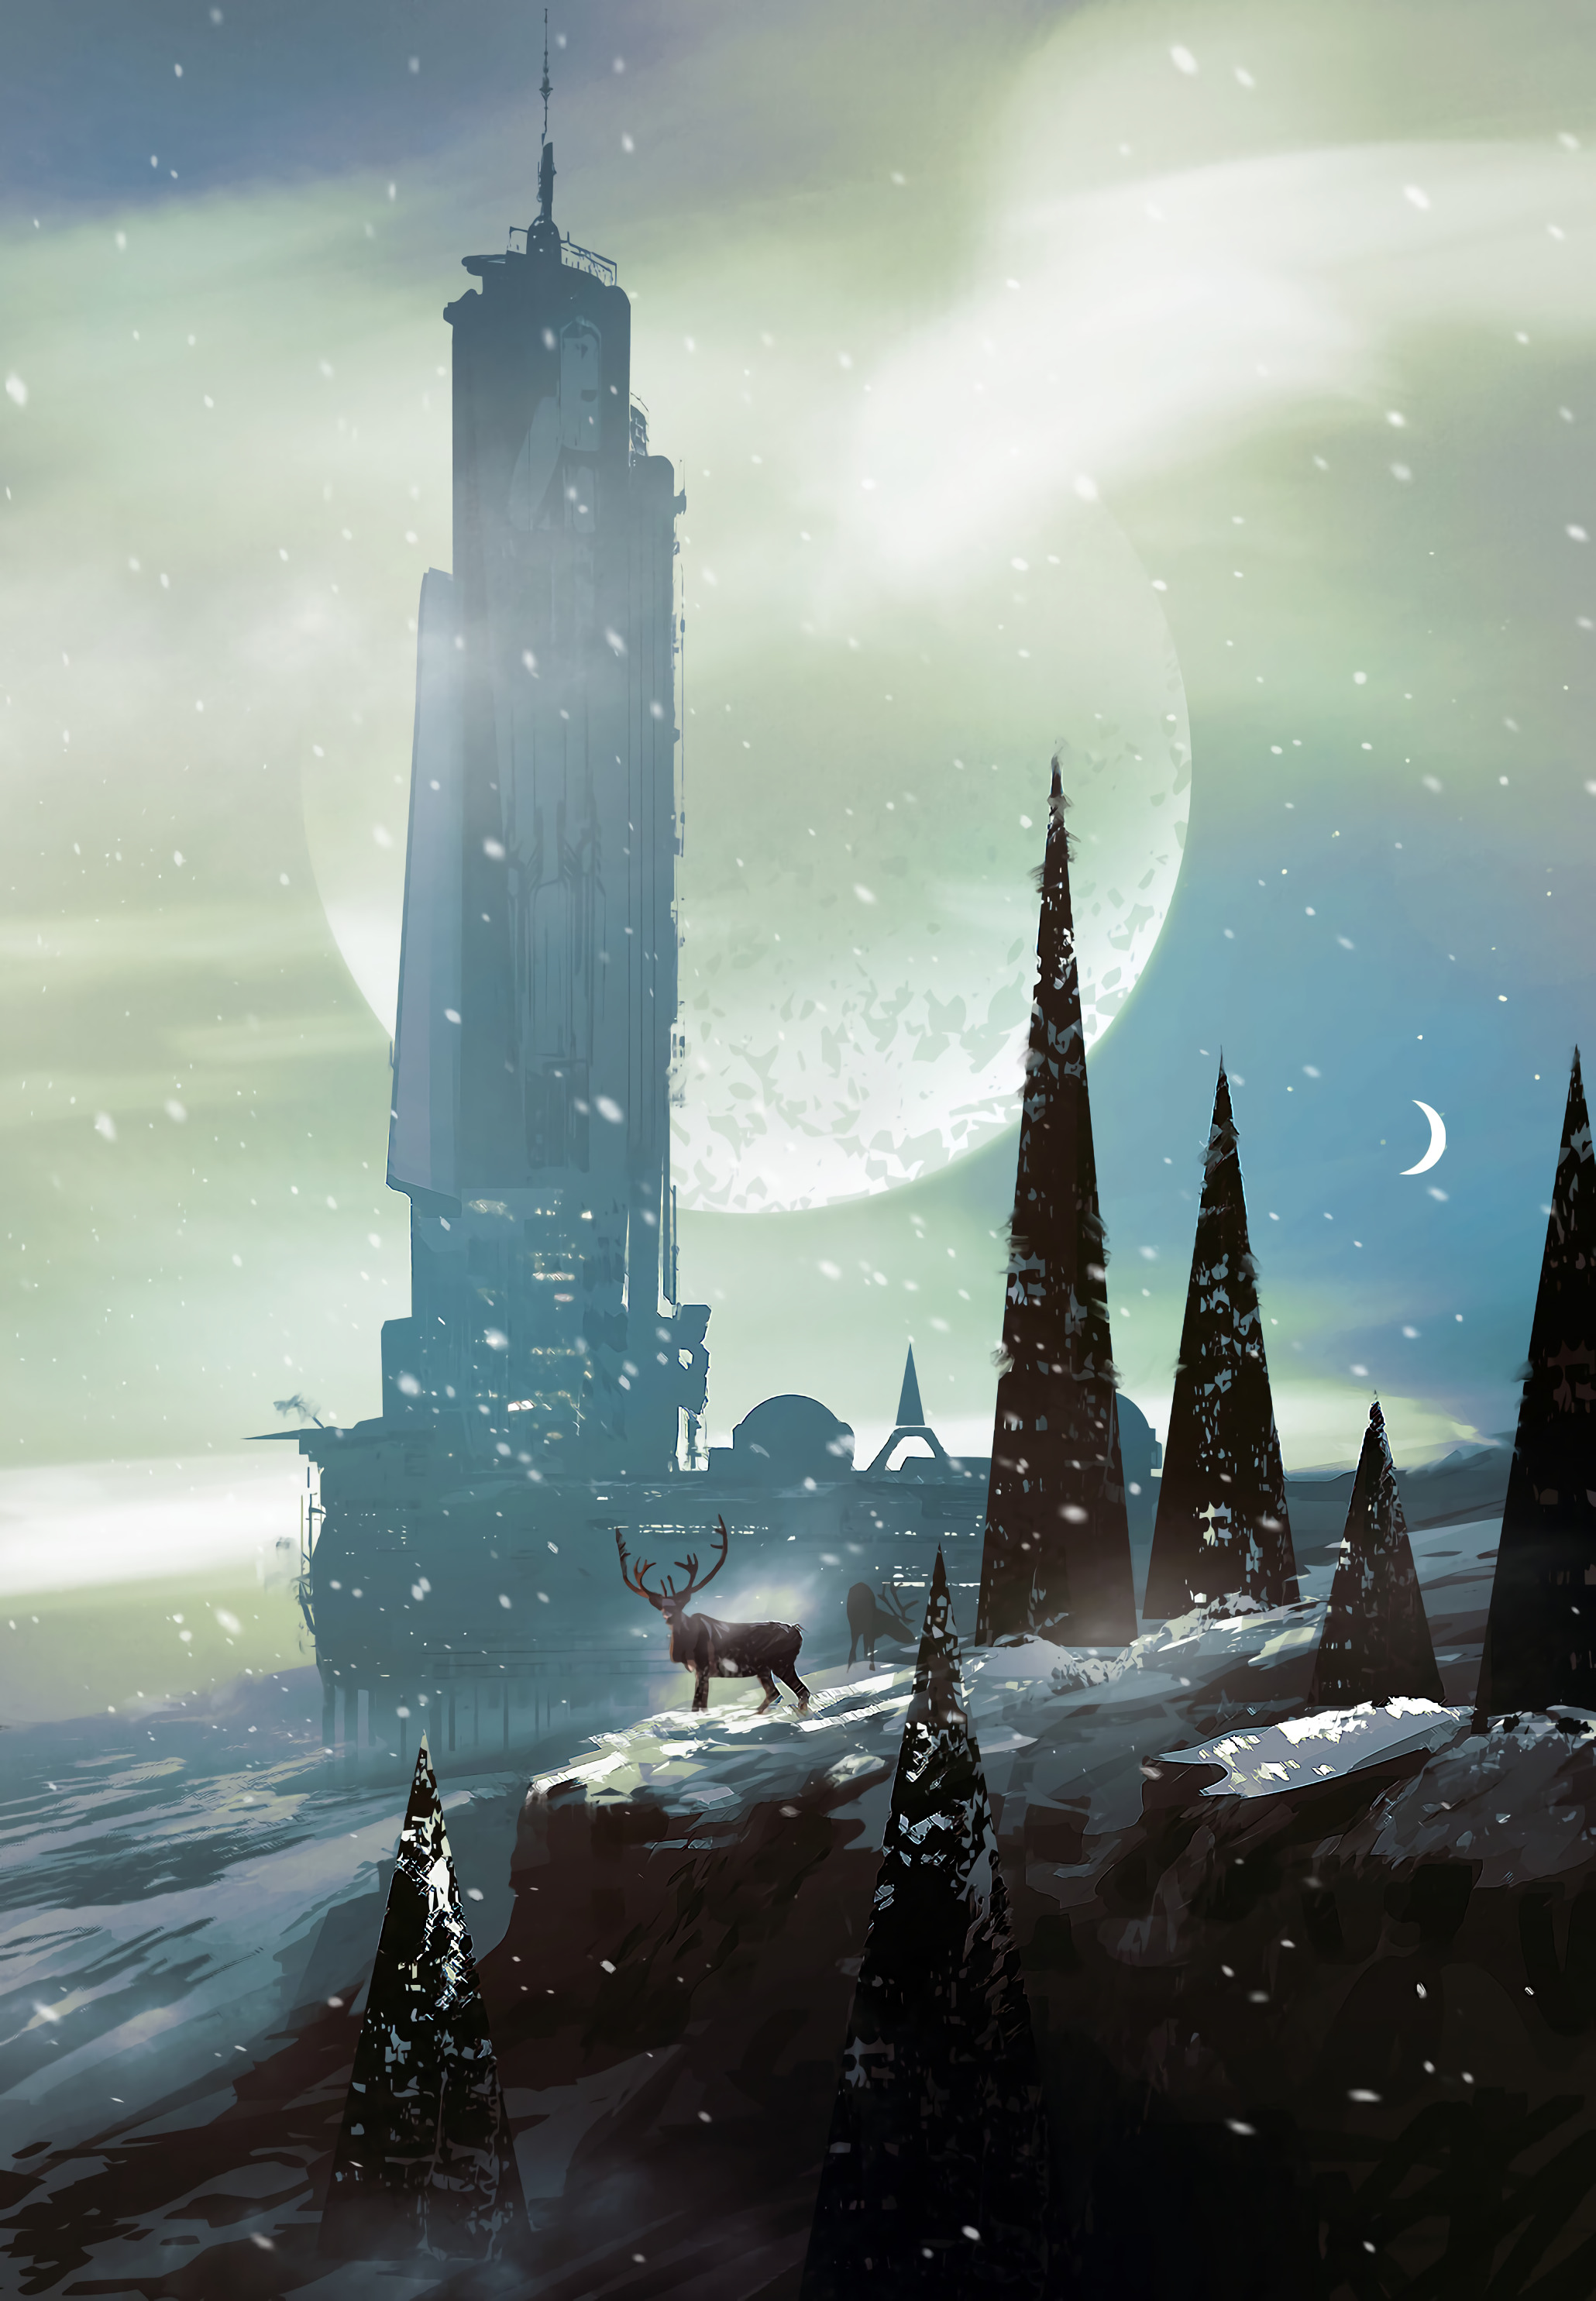 50873 download wallpaper Deers, Trees, Building, Snow, Sci-Fi, Art screensavers and pictures for free